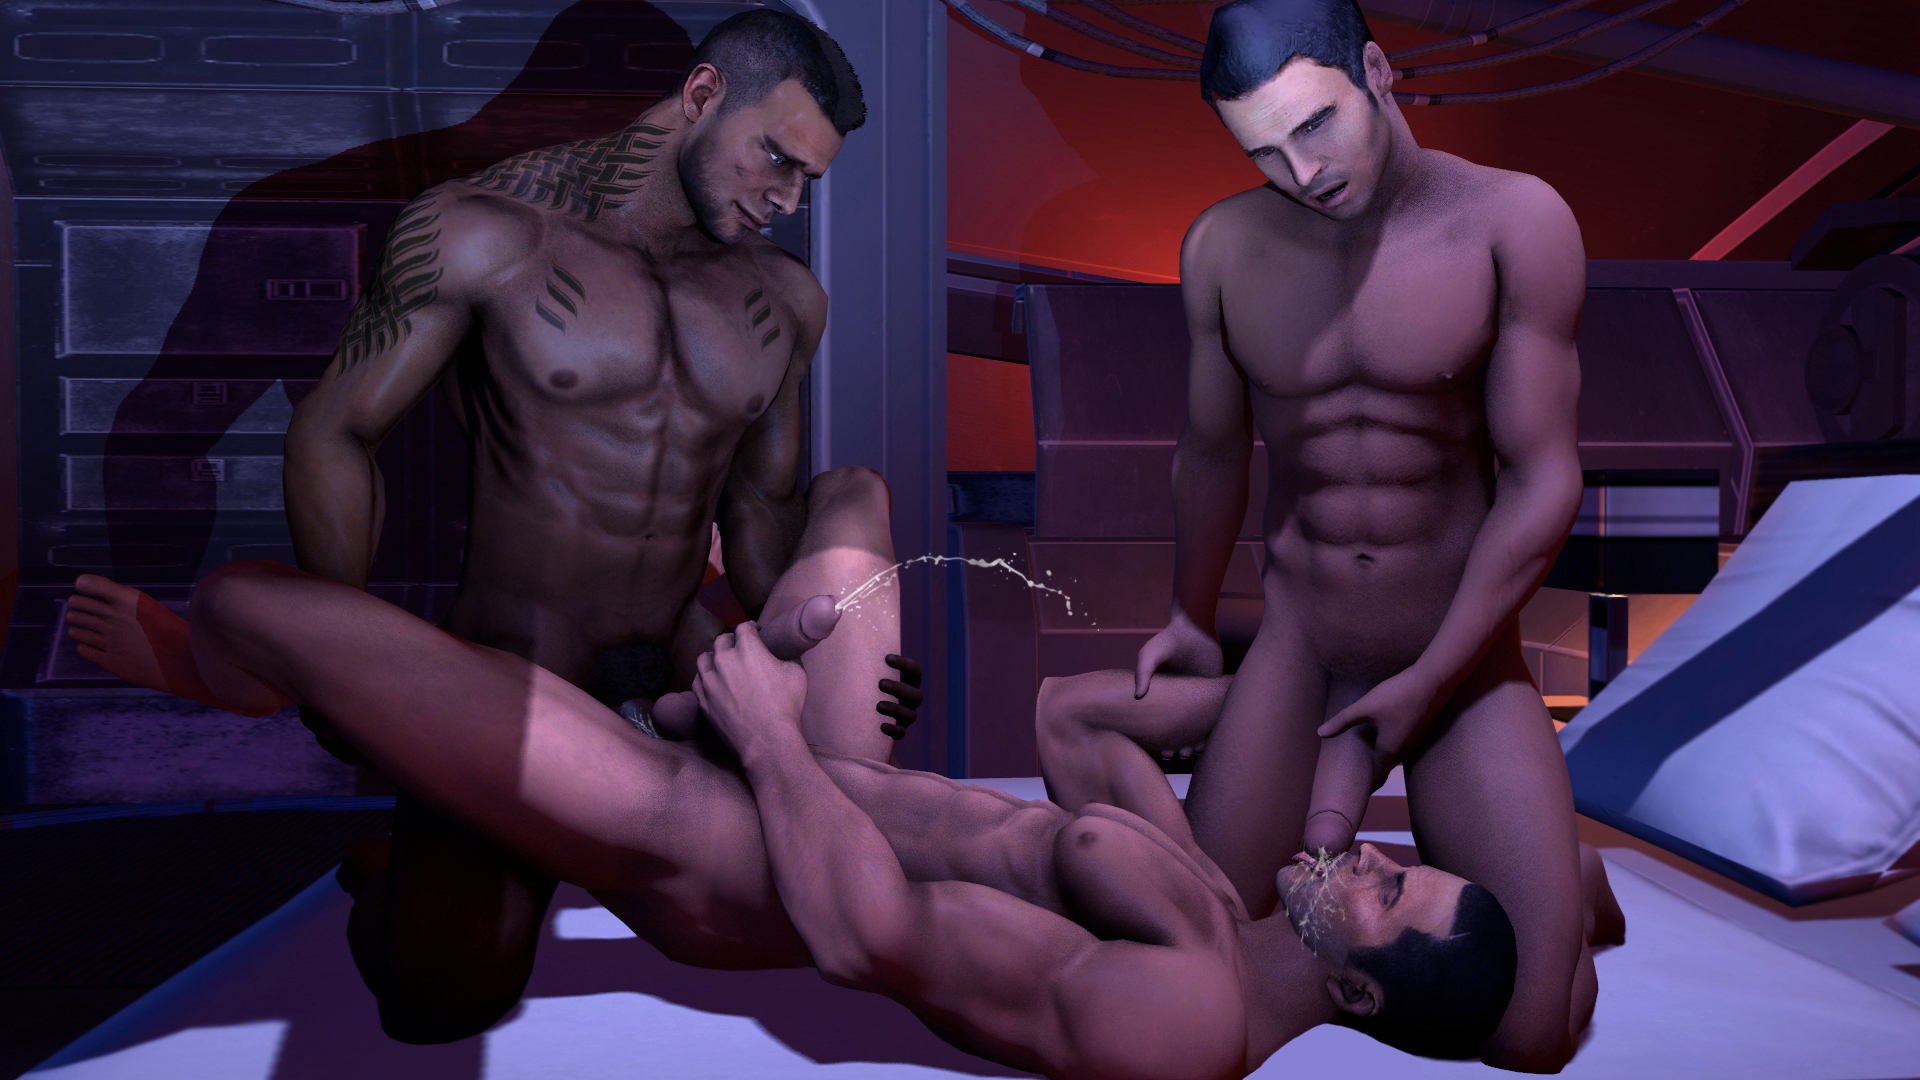 Gay porn nervous game